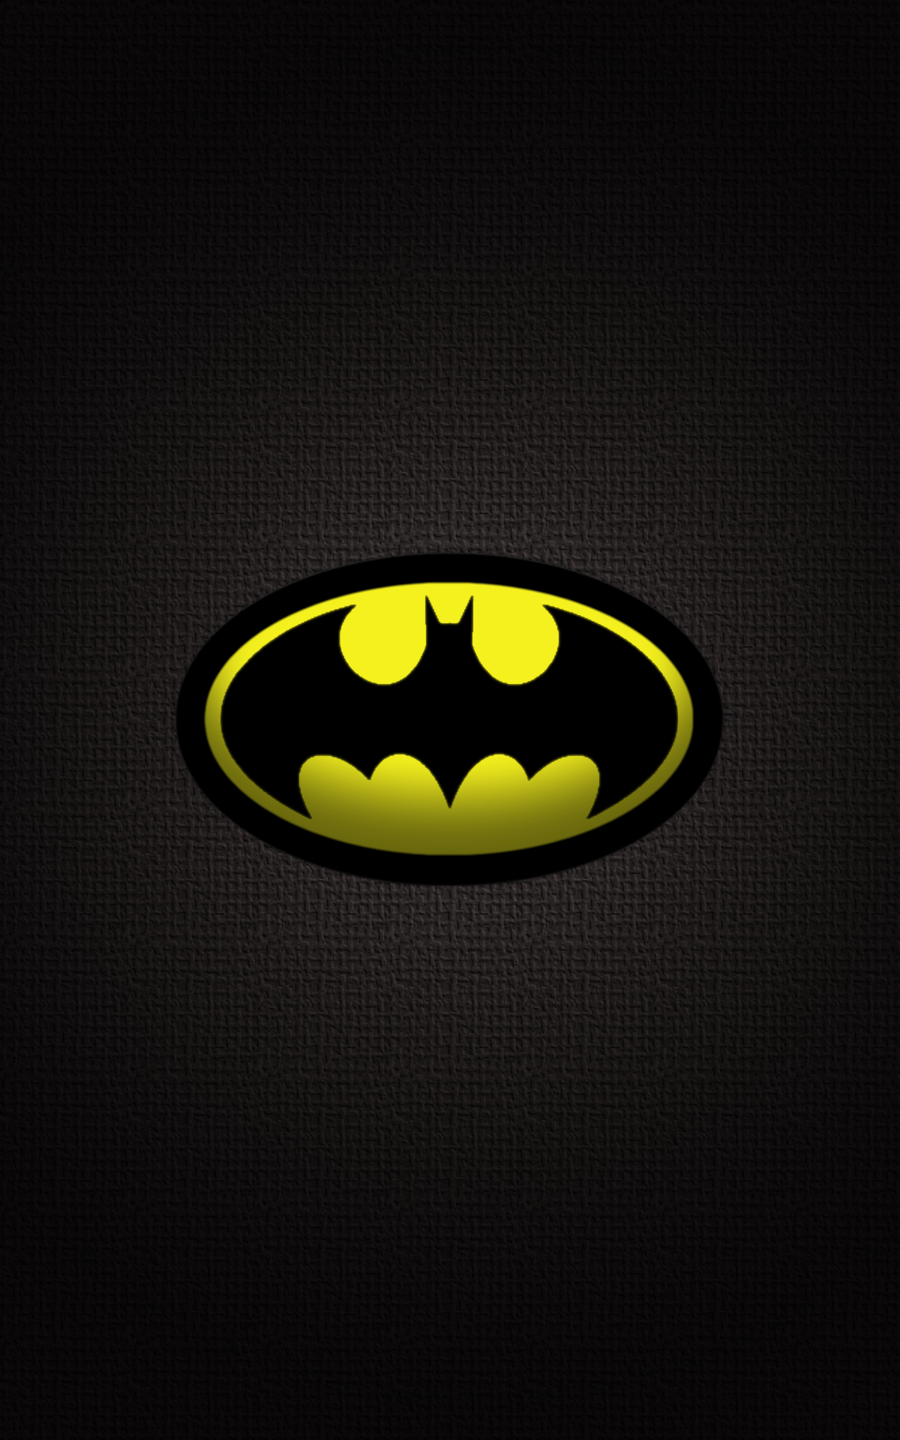 Batman Hd Wallpaper For Iphone 7 In 2020 Batman Wallpaper Iphone